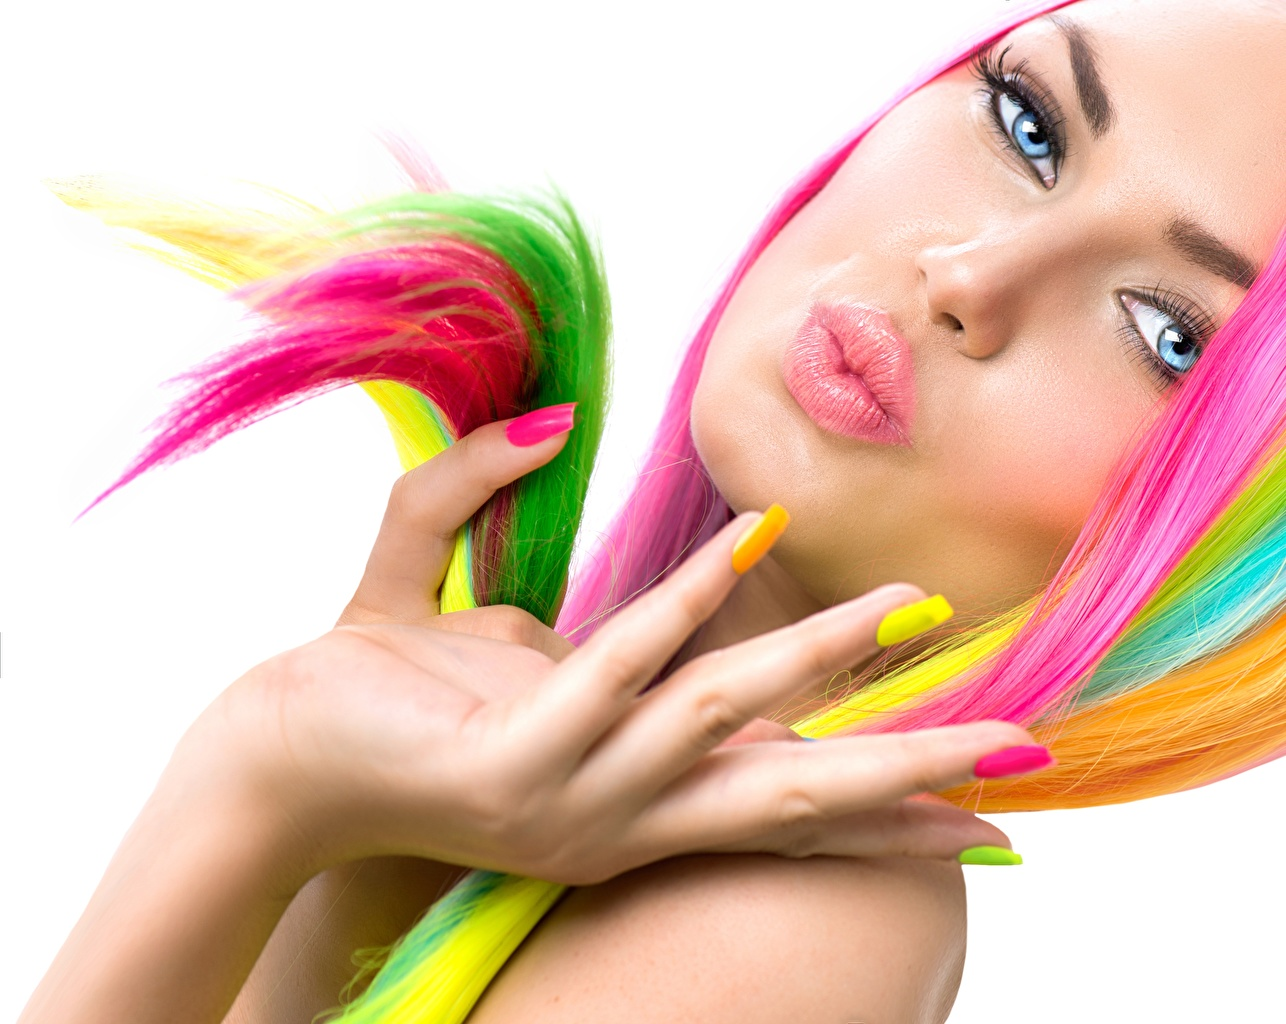 Pictures Manicure Multicolor Face Girls Lips Hands Fingers White background female young woman